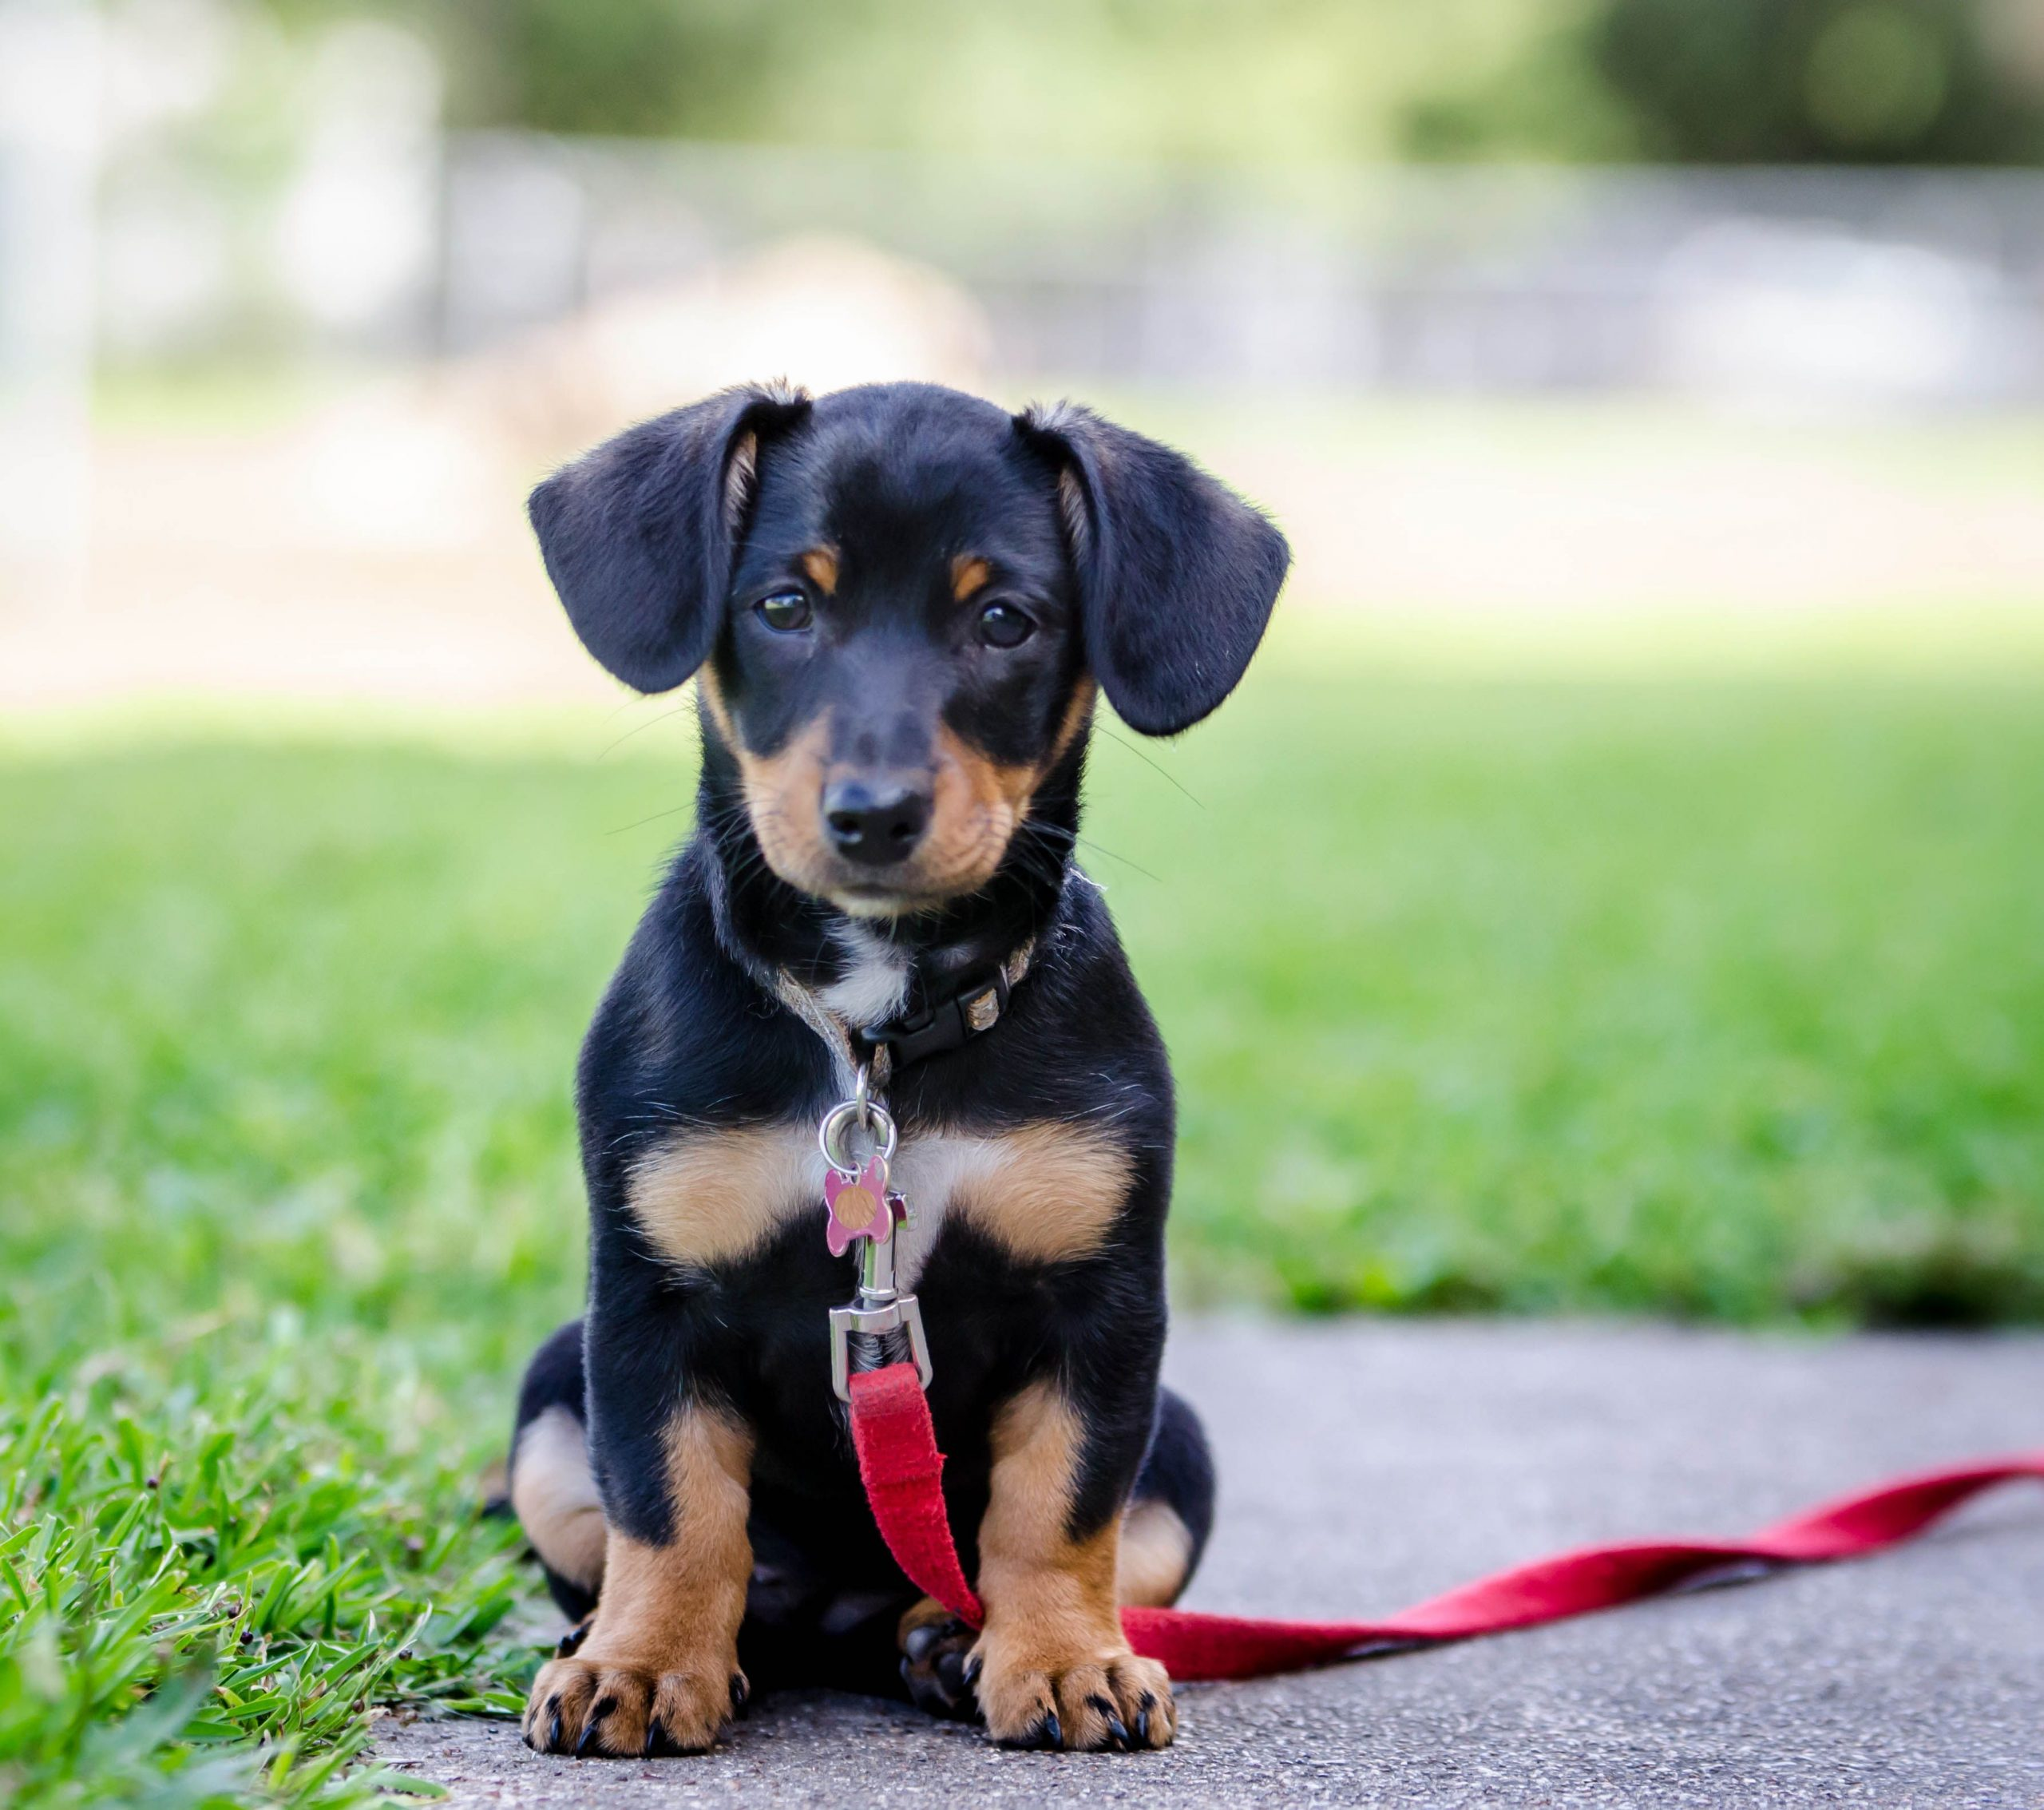 Can Cross Breed Dogs Reproduce?